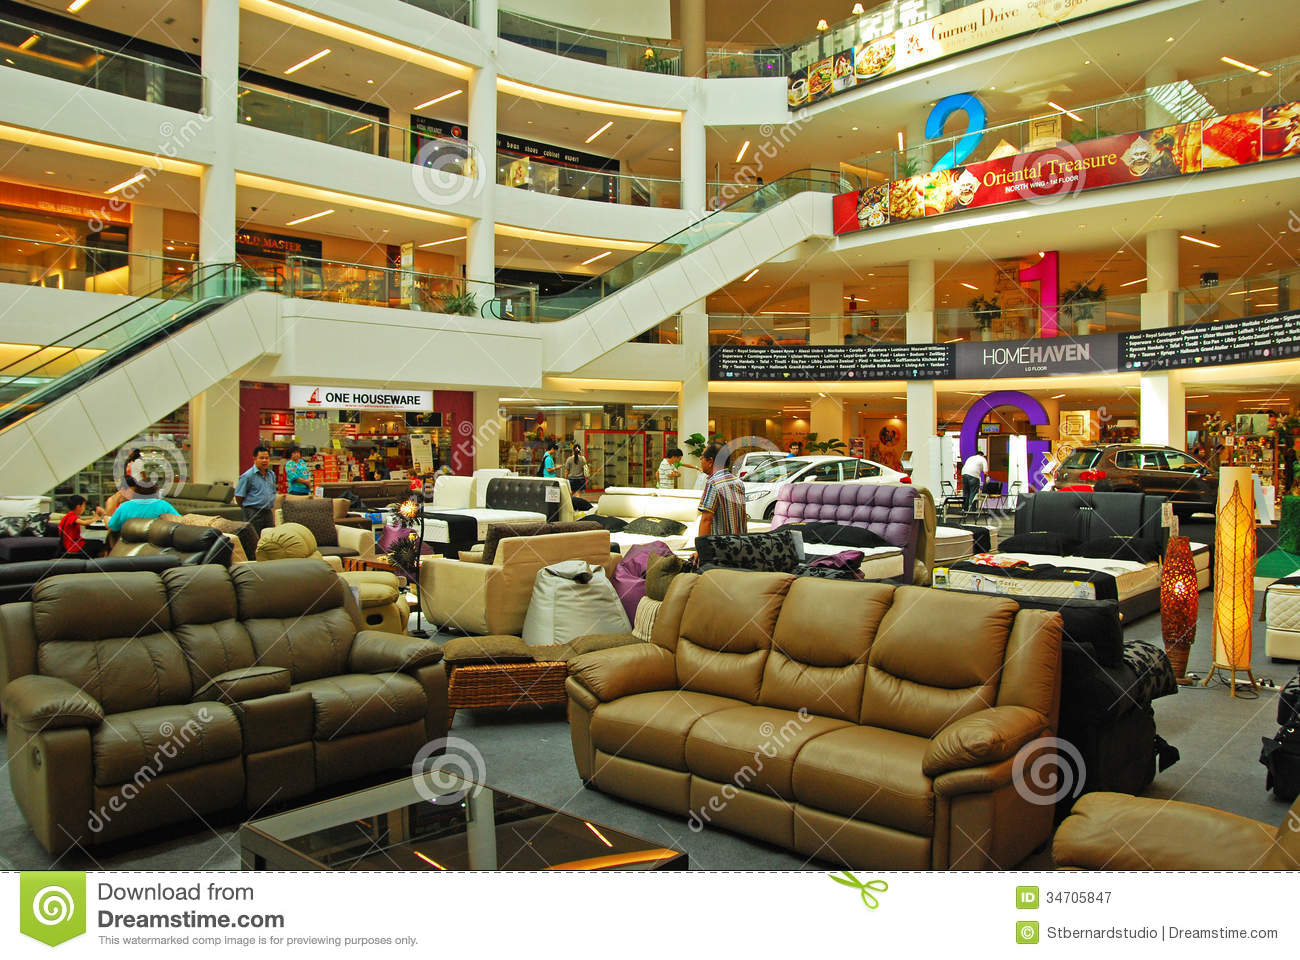 Concourse in Shopping Mall used for Furniture and